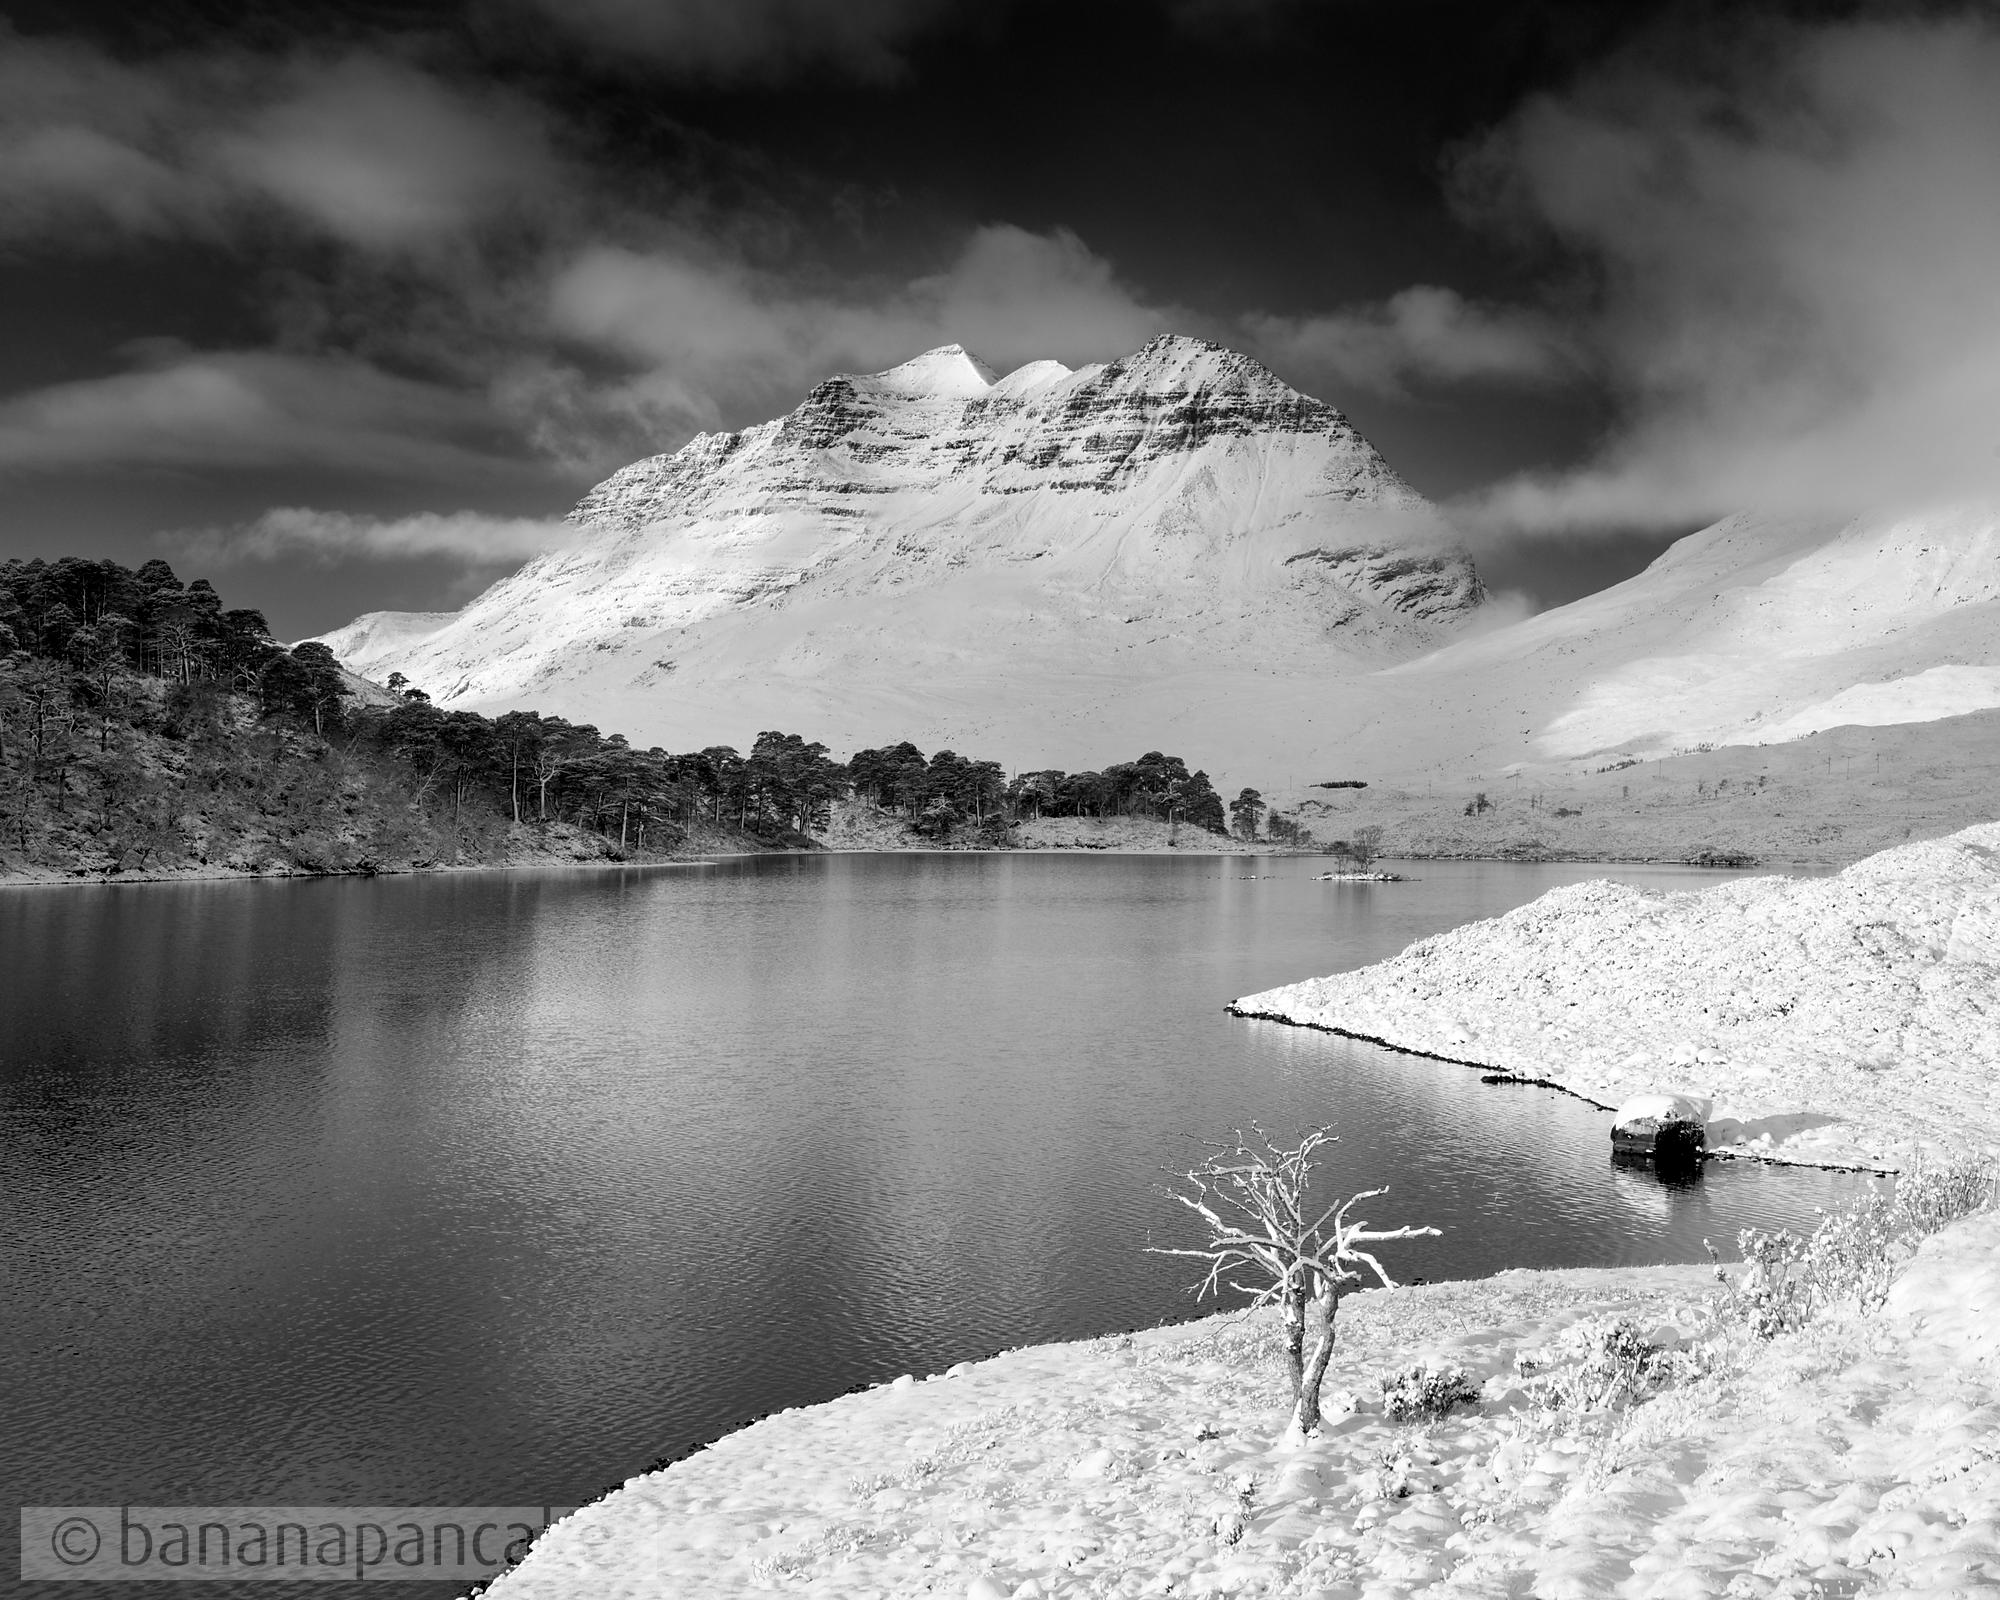 BP3525 - Liathach from Loch Clair, Glen Torridon, Scotland